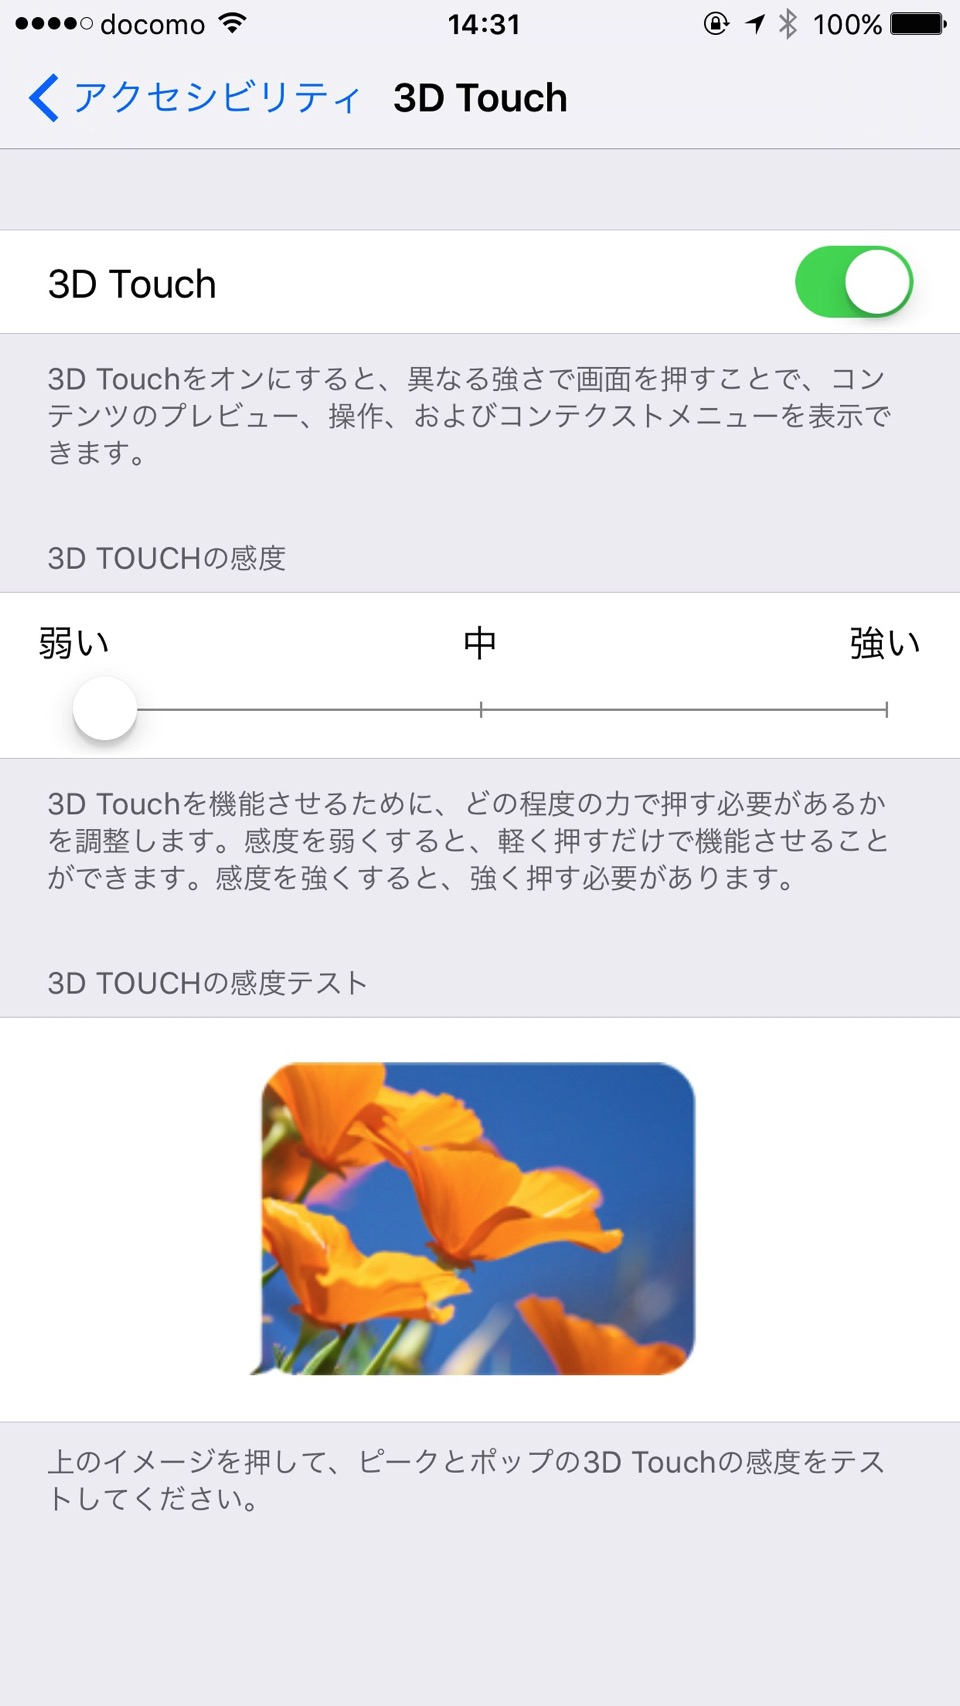 iPhone 6s/6s Plusの「3D Touch」がむちゃくちゃ便利